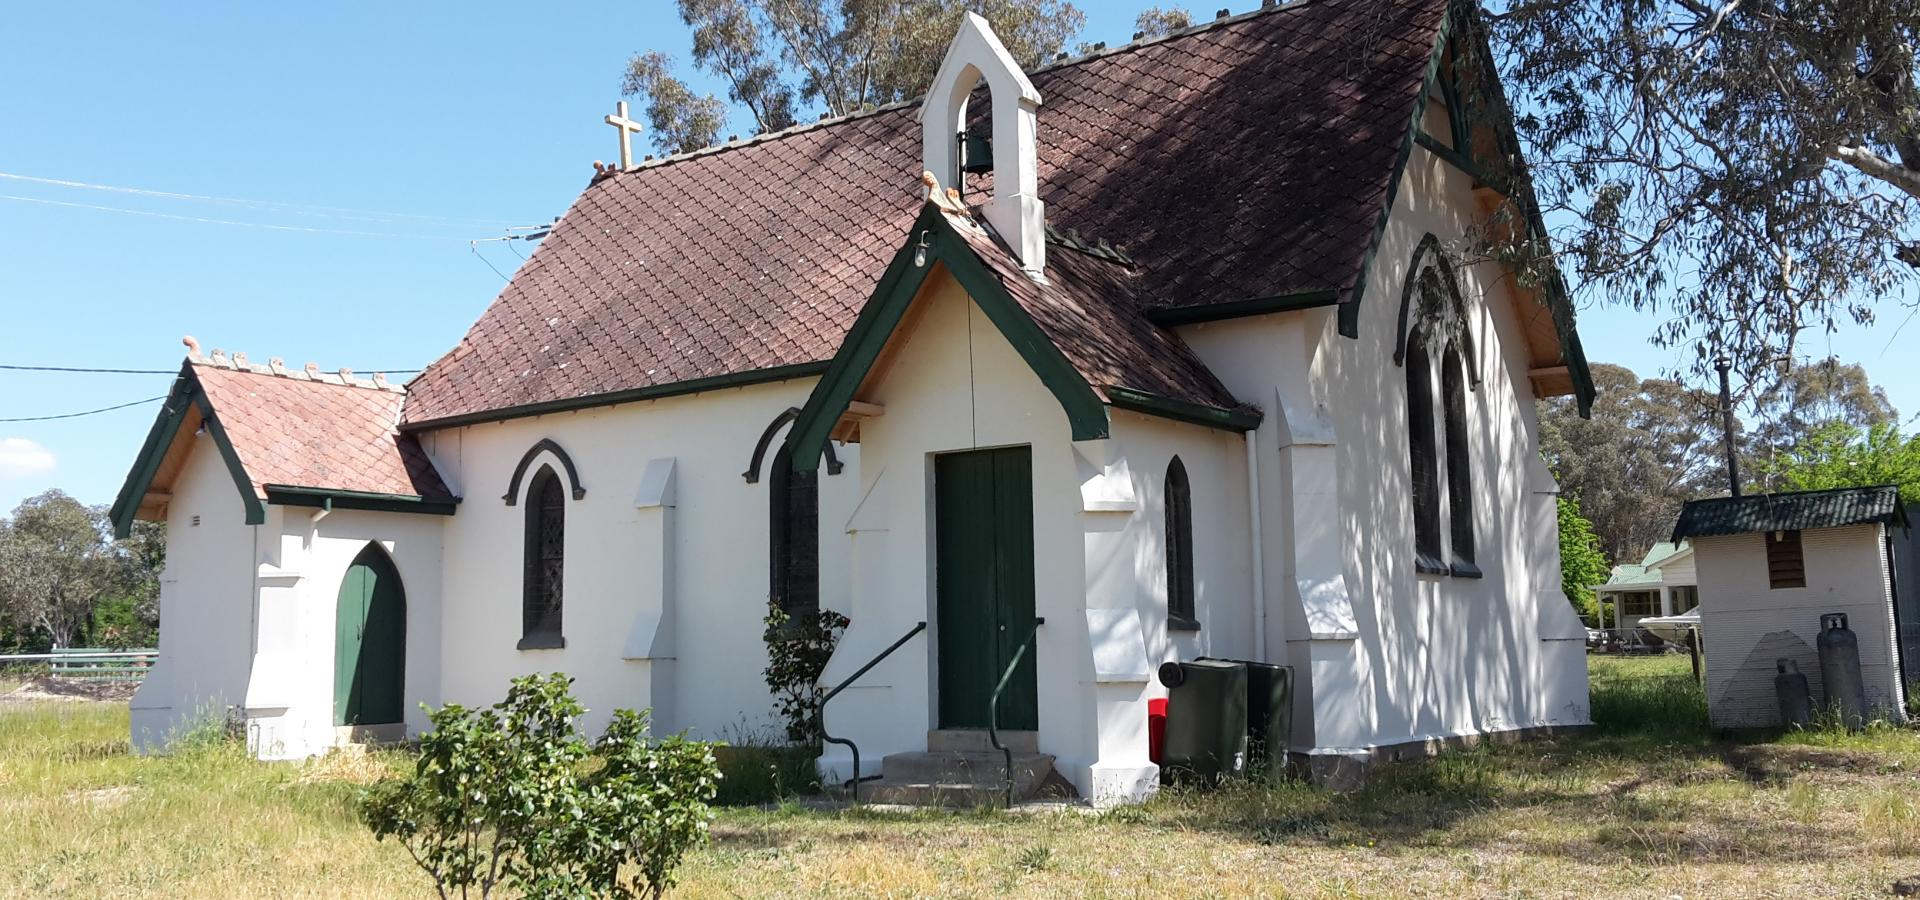 UNIQUE HOME OR GALLERY OPPORTUNITY - St. STEPHENS CHURCH